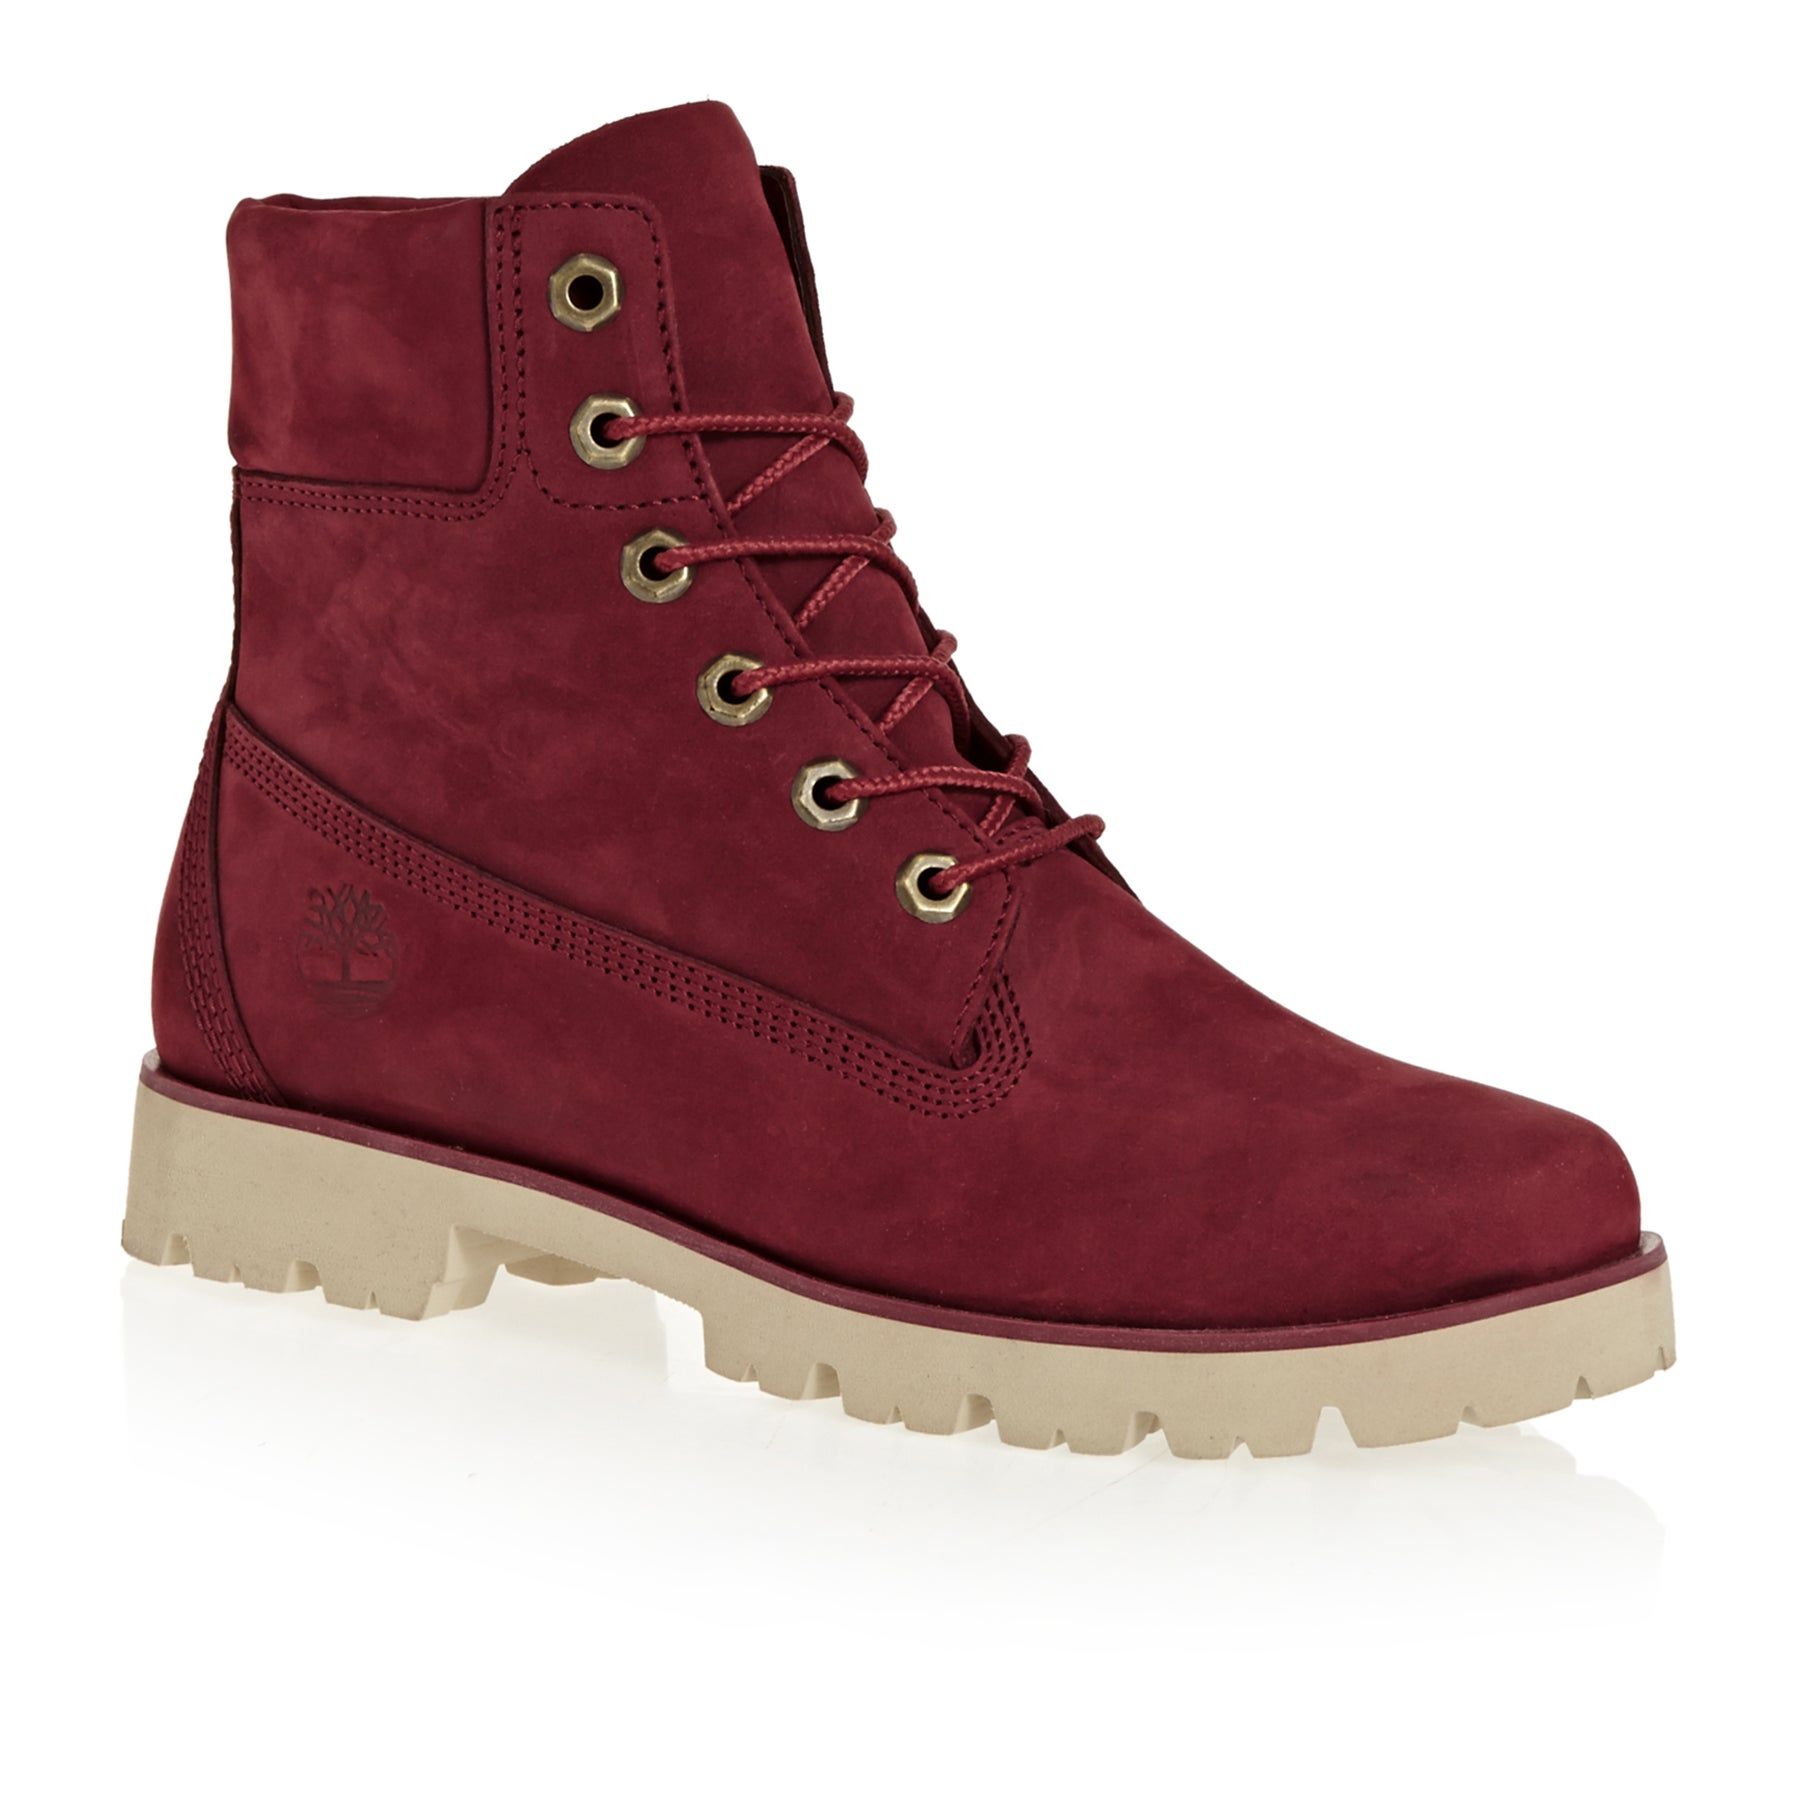 Timberland Heritage Lite 6in Bo Pomegranate Ladies Boots